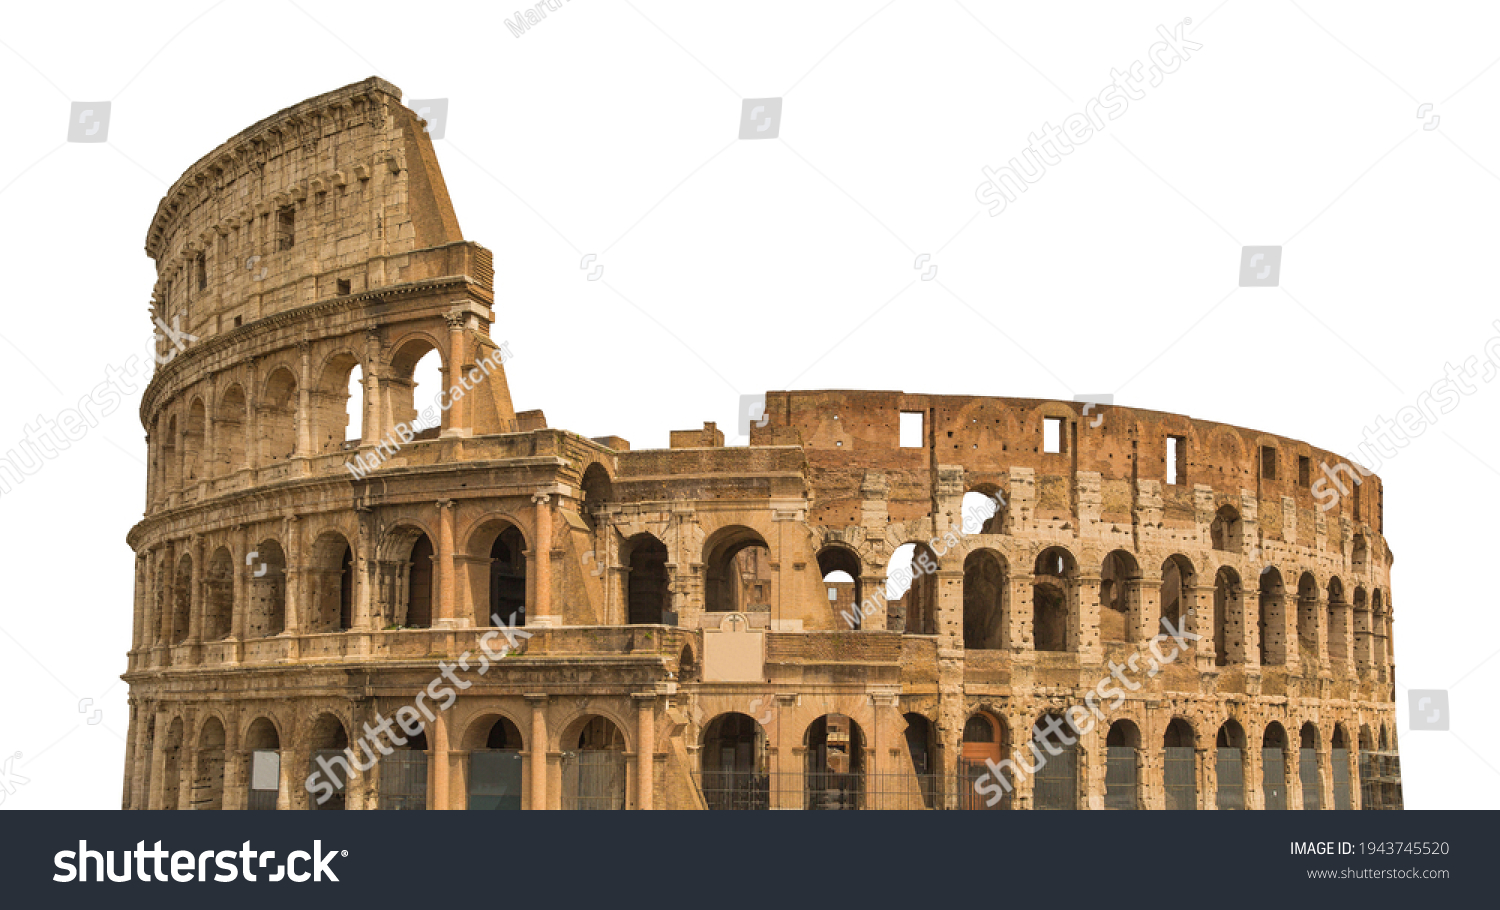 Colosseum, or Coliseum, isolated on white background. Symbol of Rome and Italy #1943745520